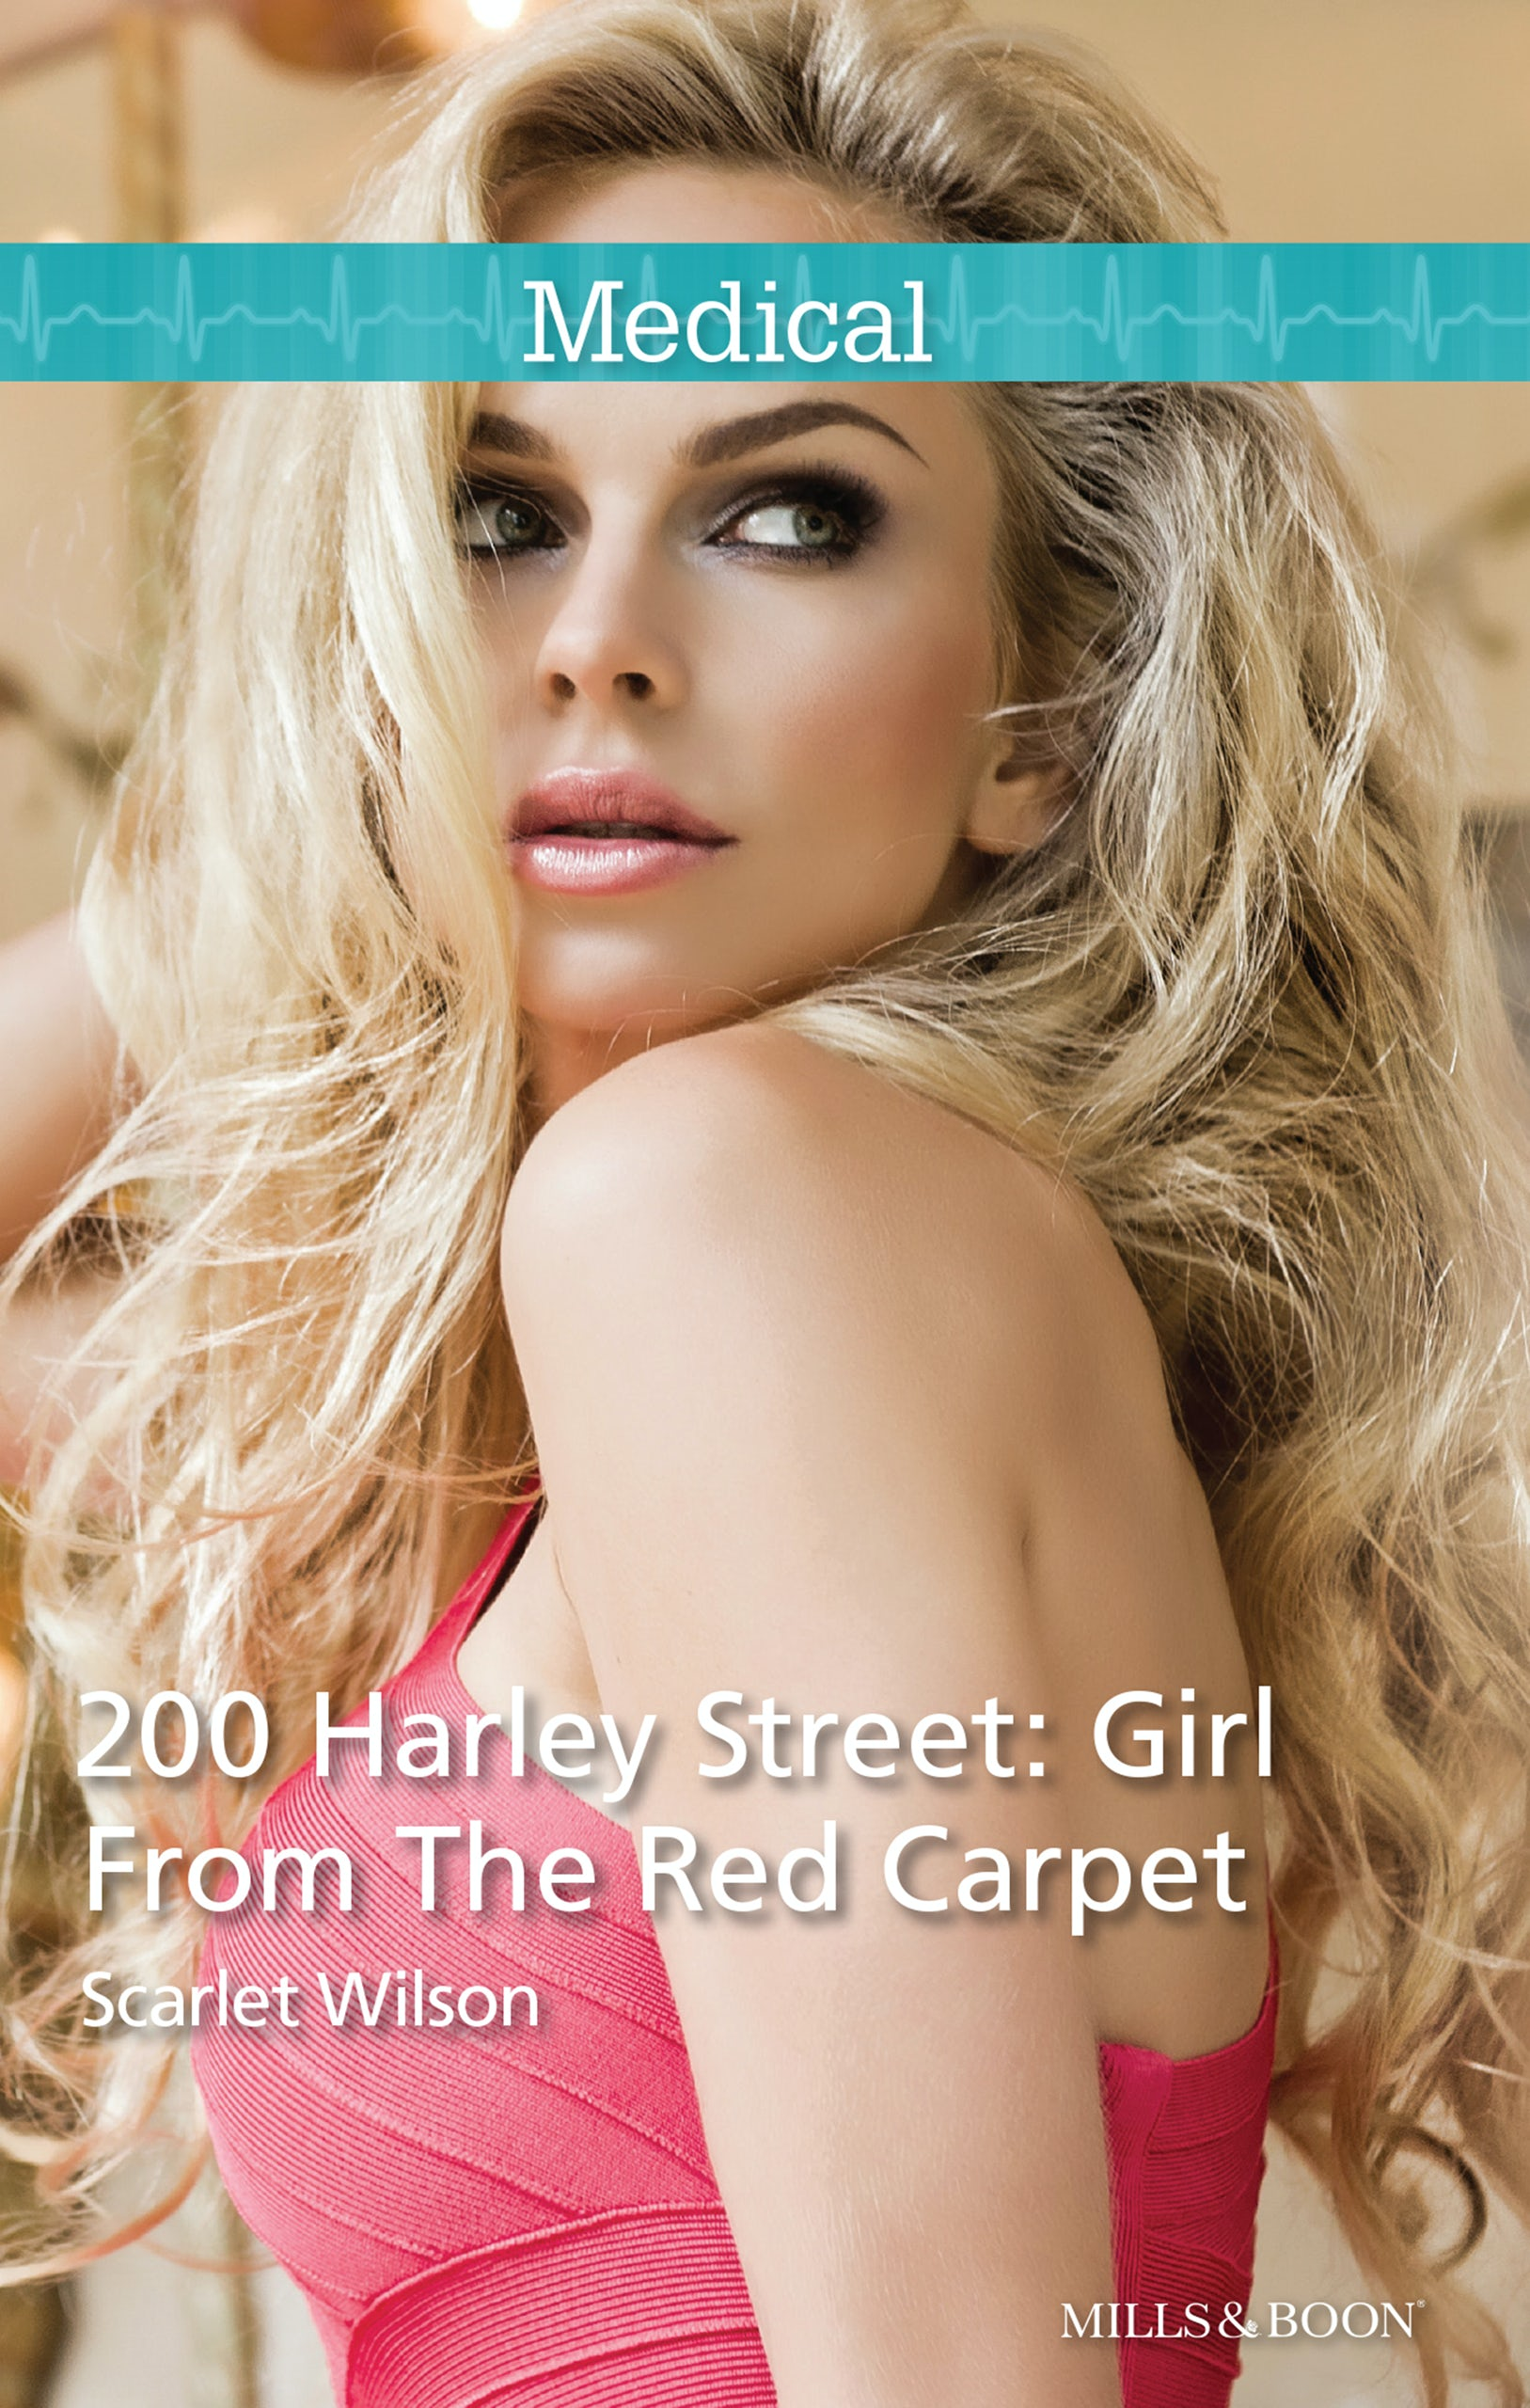 Girl From The Red Carpet by Scarlet Wilson